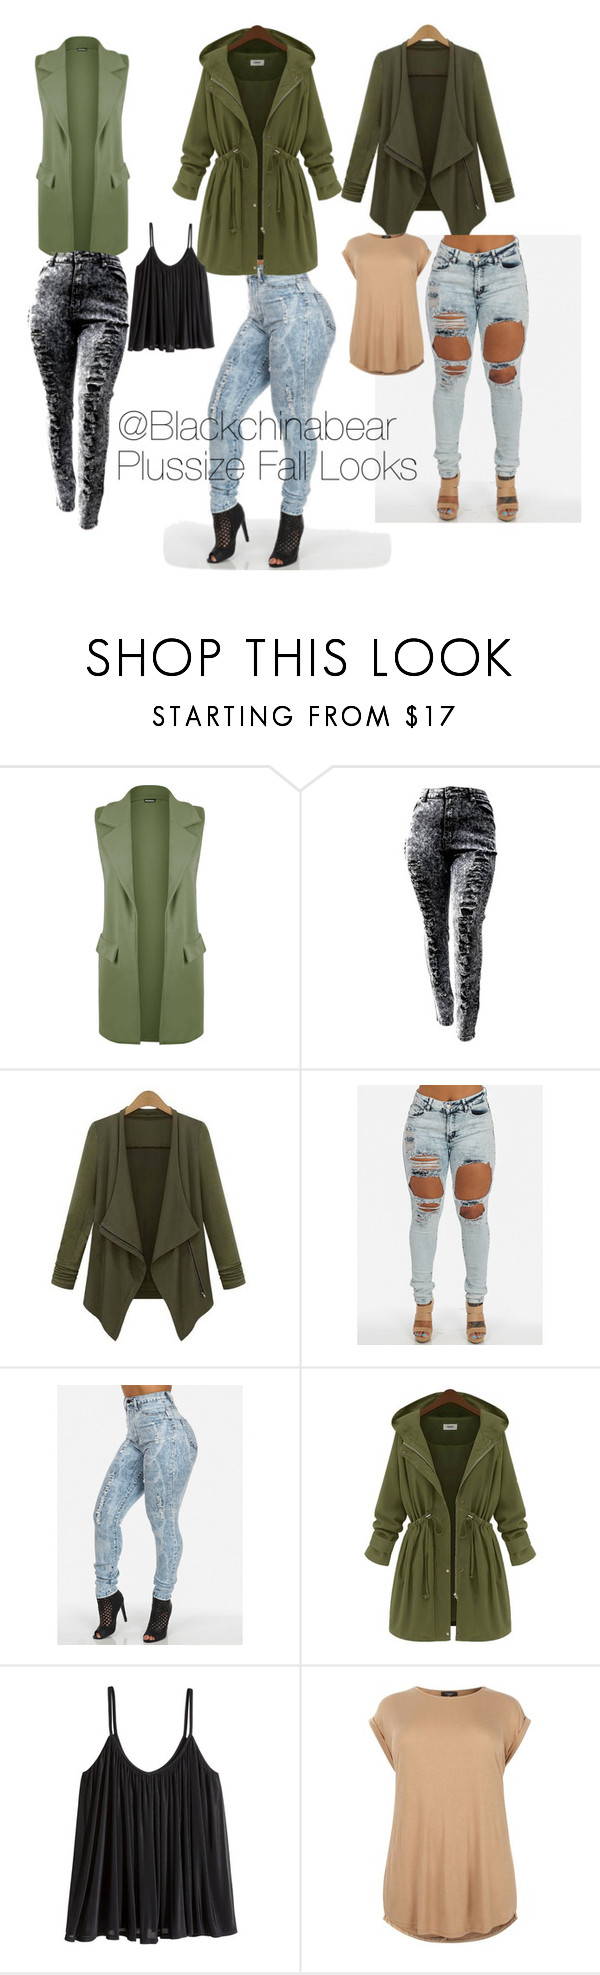 """#4 Olive You"" by blackchinabear ❤ liked on Polyvore featuring WearAll, H&M, ootd, olive, outfitoftheday, plussize, plussizefashion and plus size clothing"